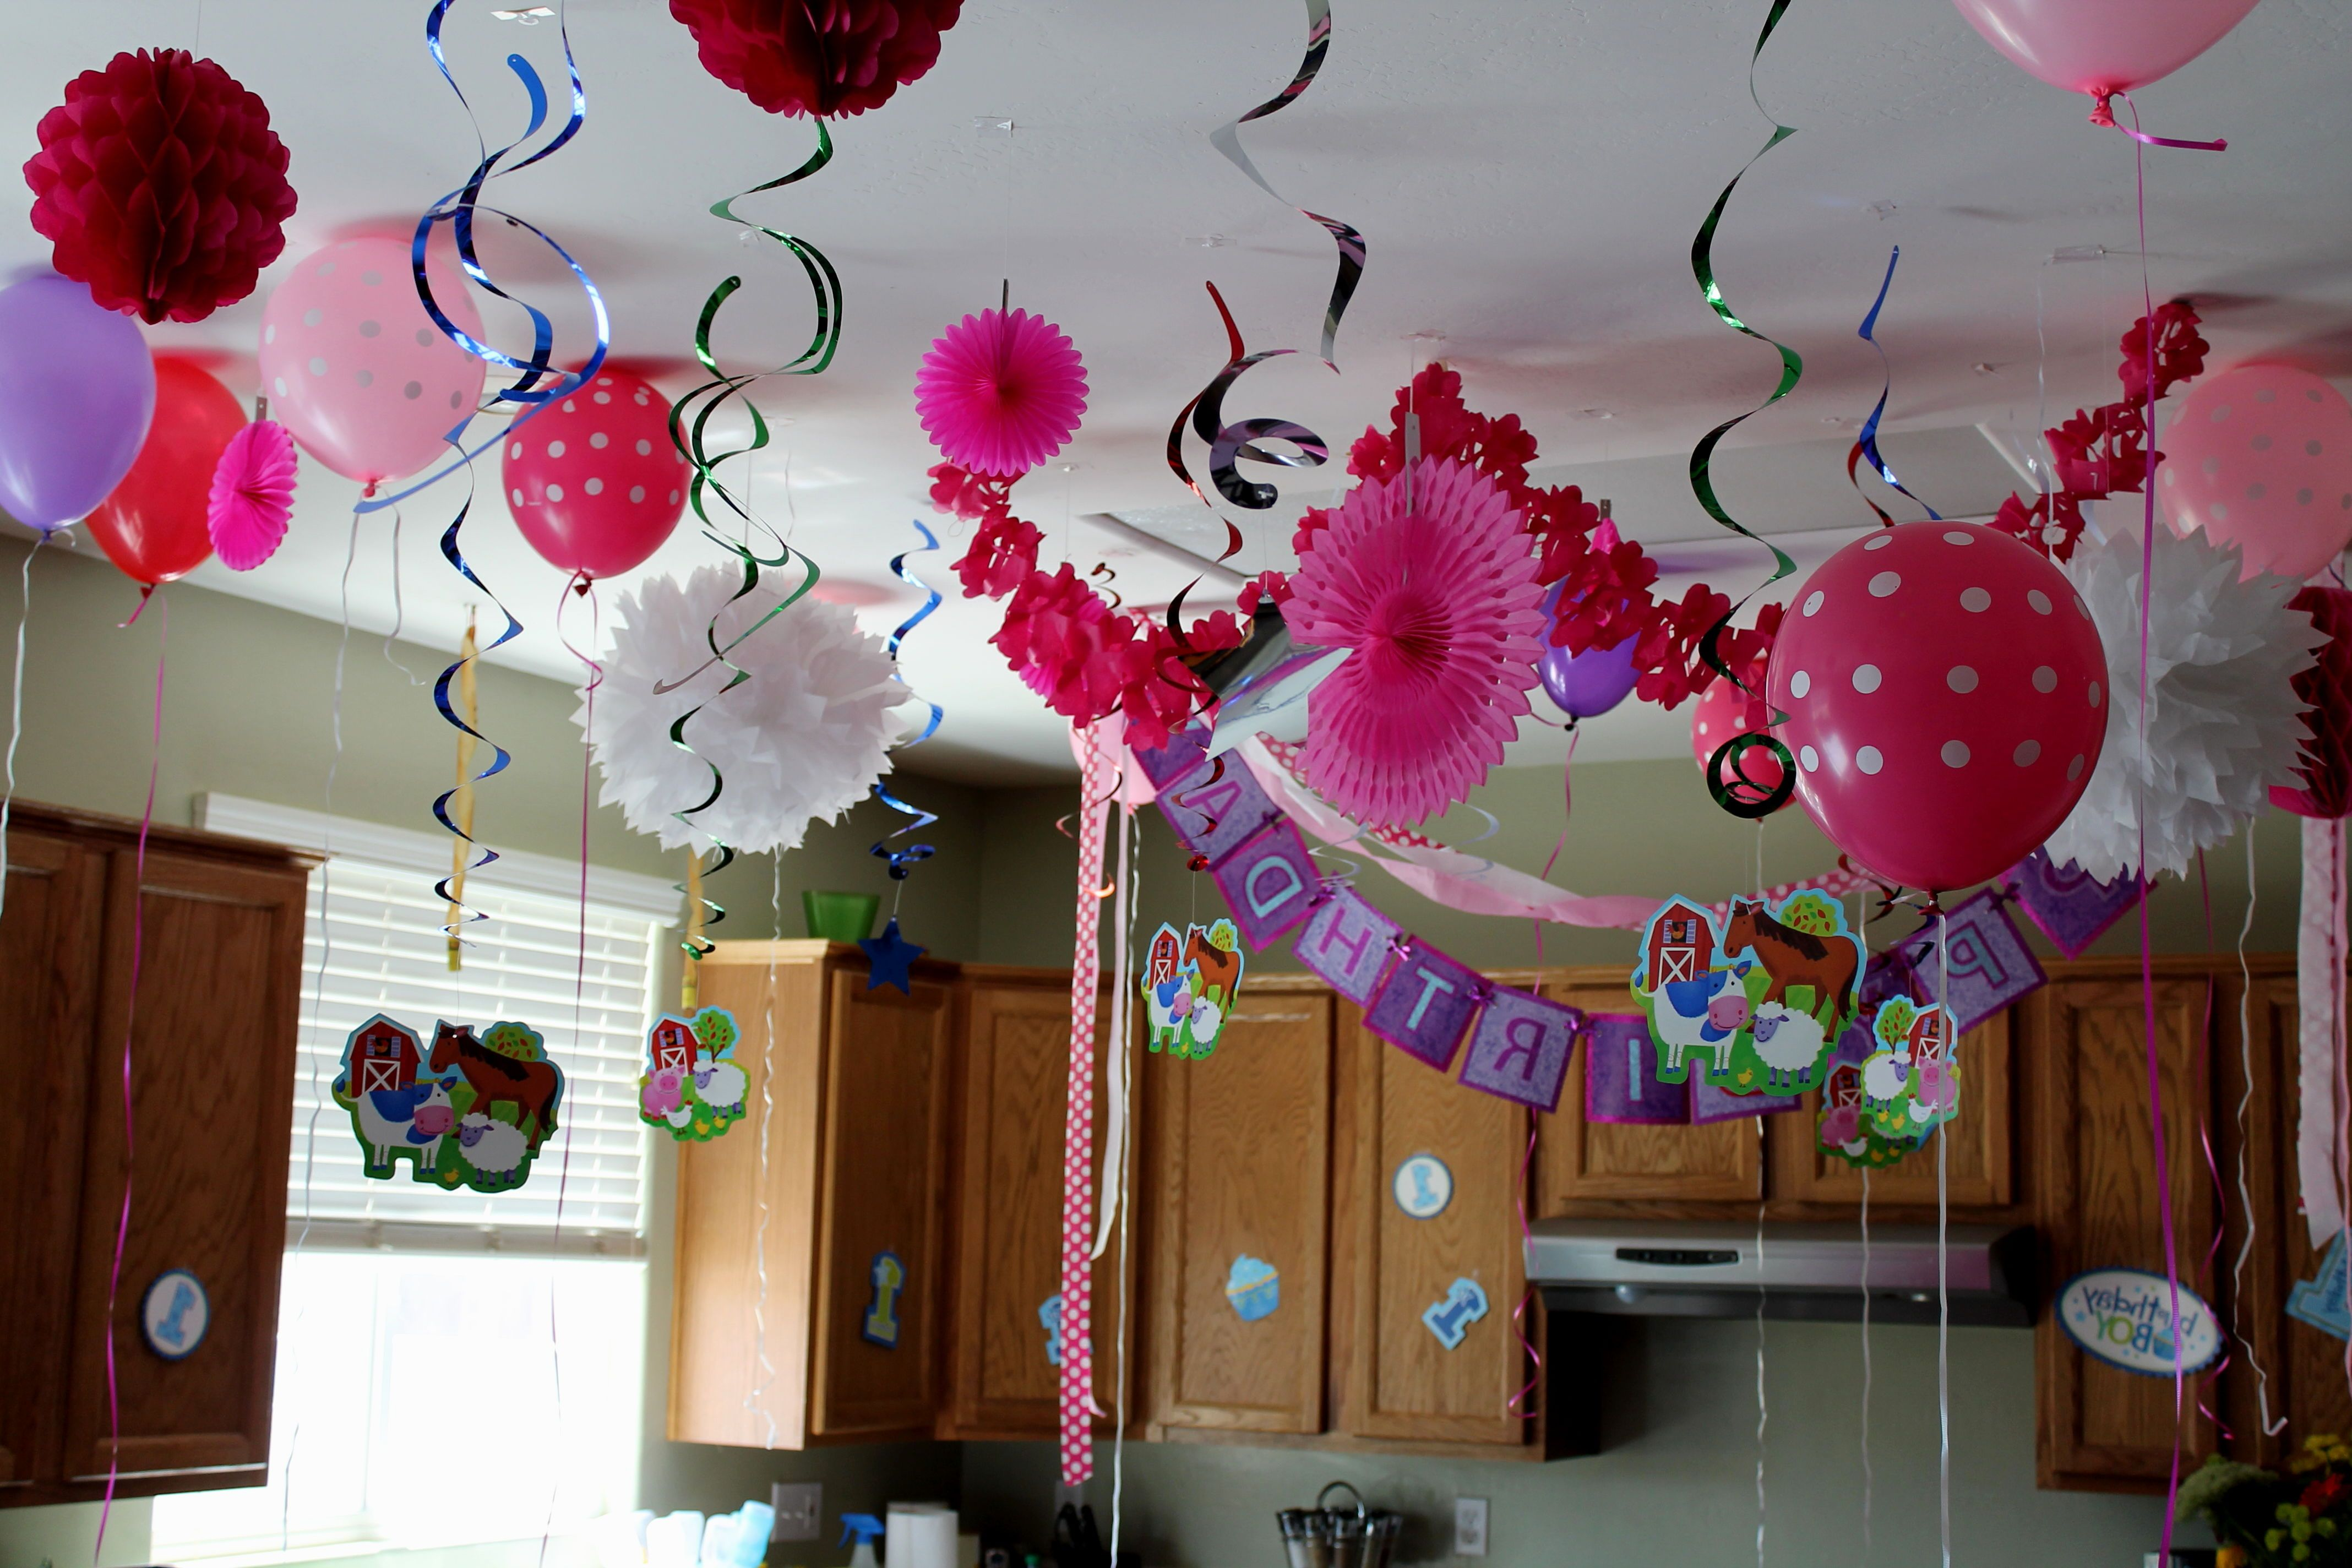 Best Of Simple Party Room Decoration Ideas And Review In 2020 Birthday Decorations At Home Diy Birthday Decorations Birthday Room Decorations